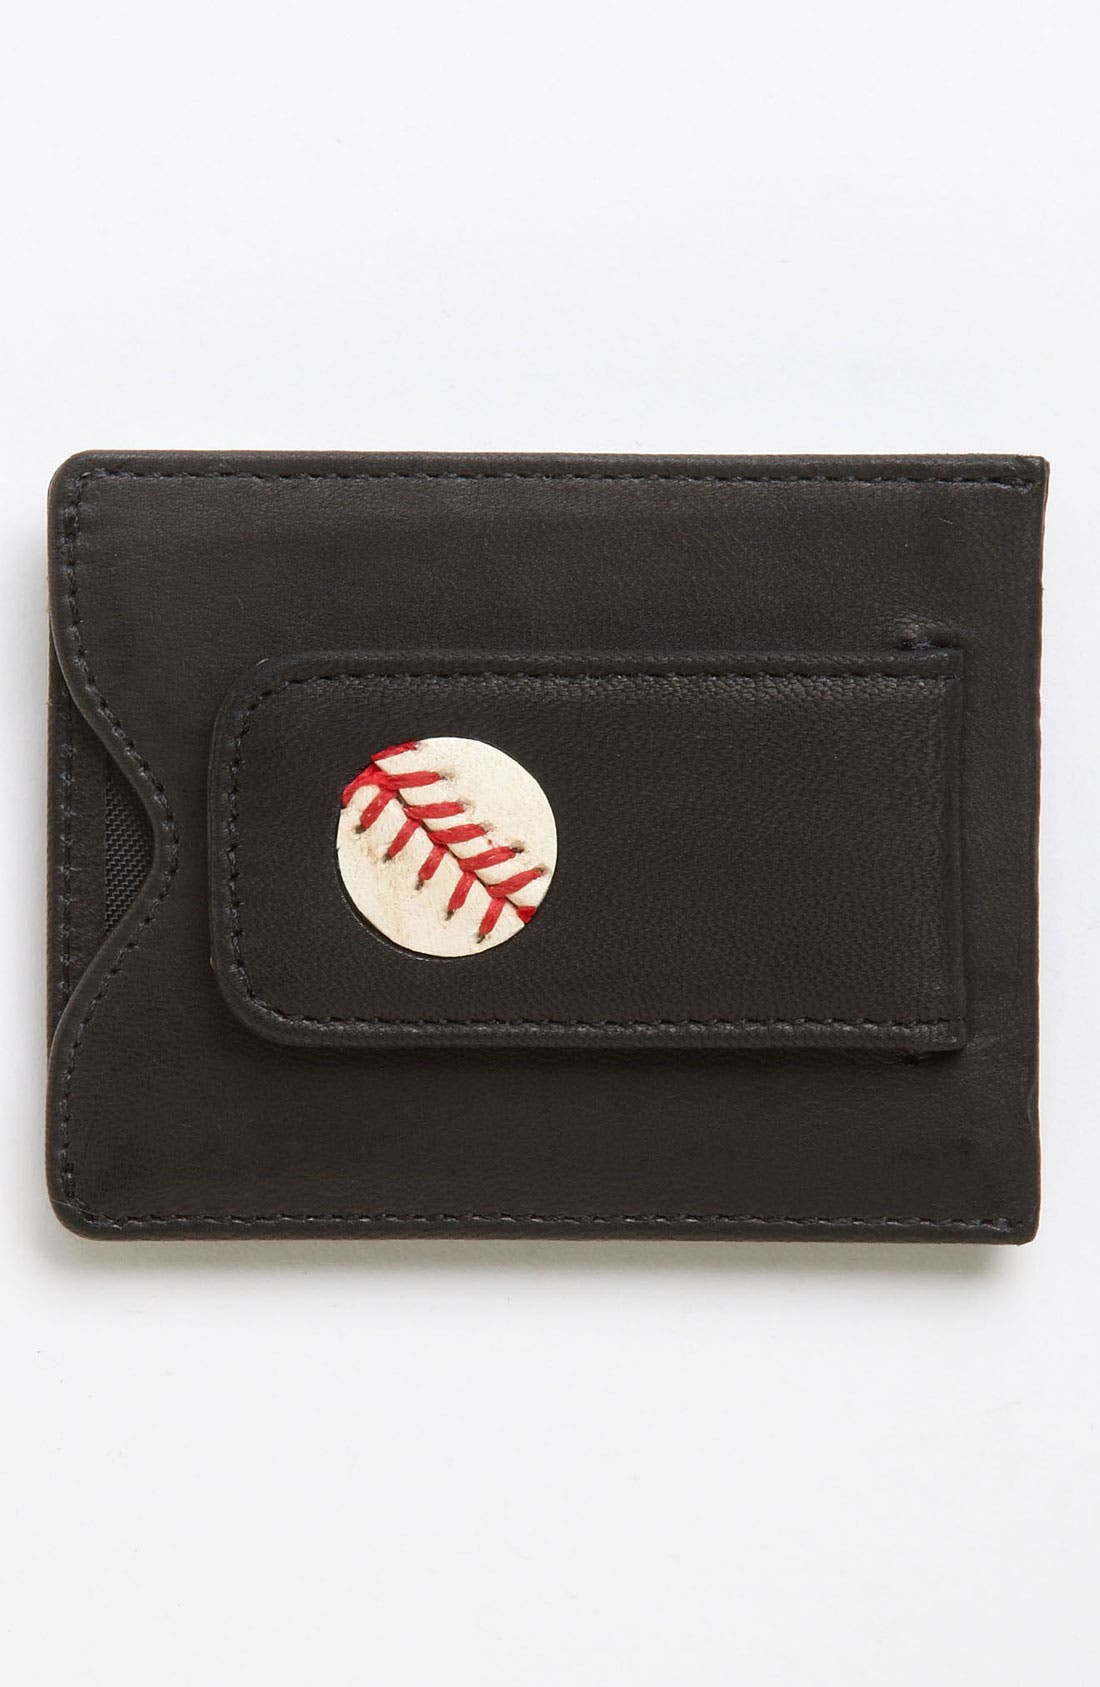 Alternate Image 1 Selected - Tokens & Icons 'Boston Red Sox' MLB™ Game-Played-Baseball Card Case